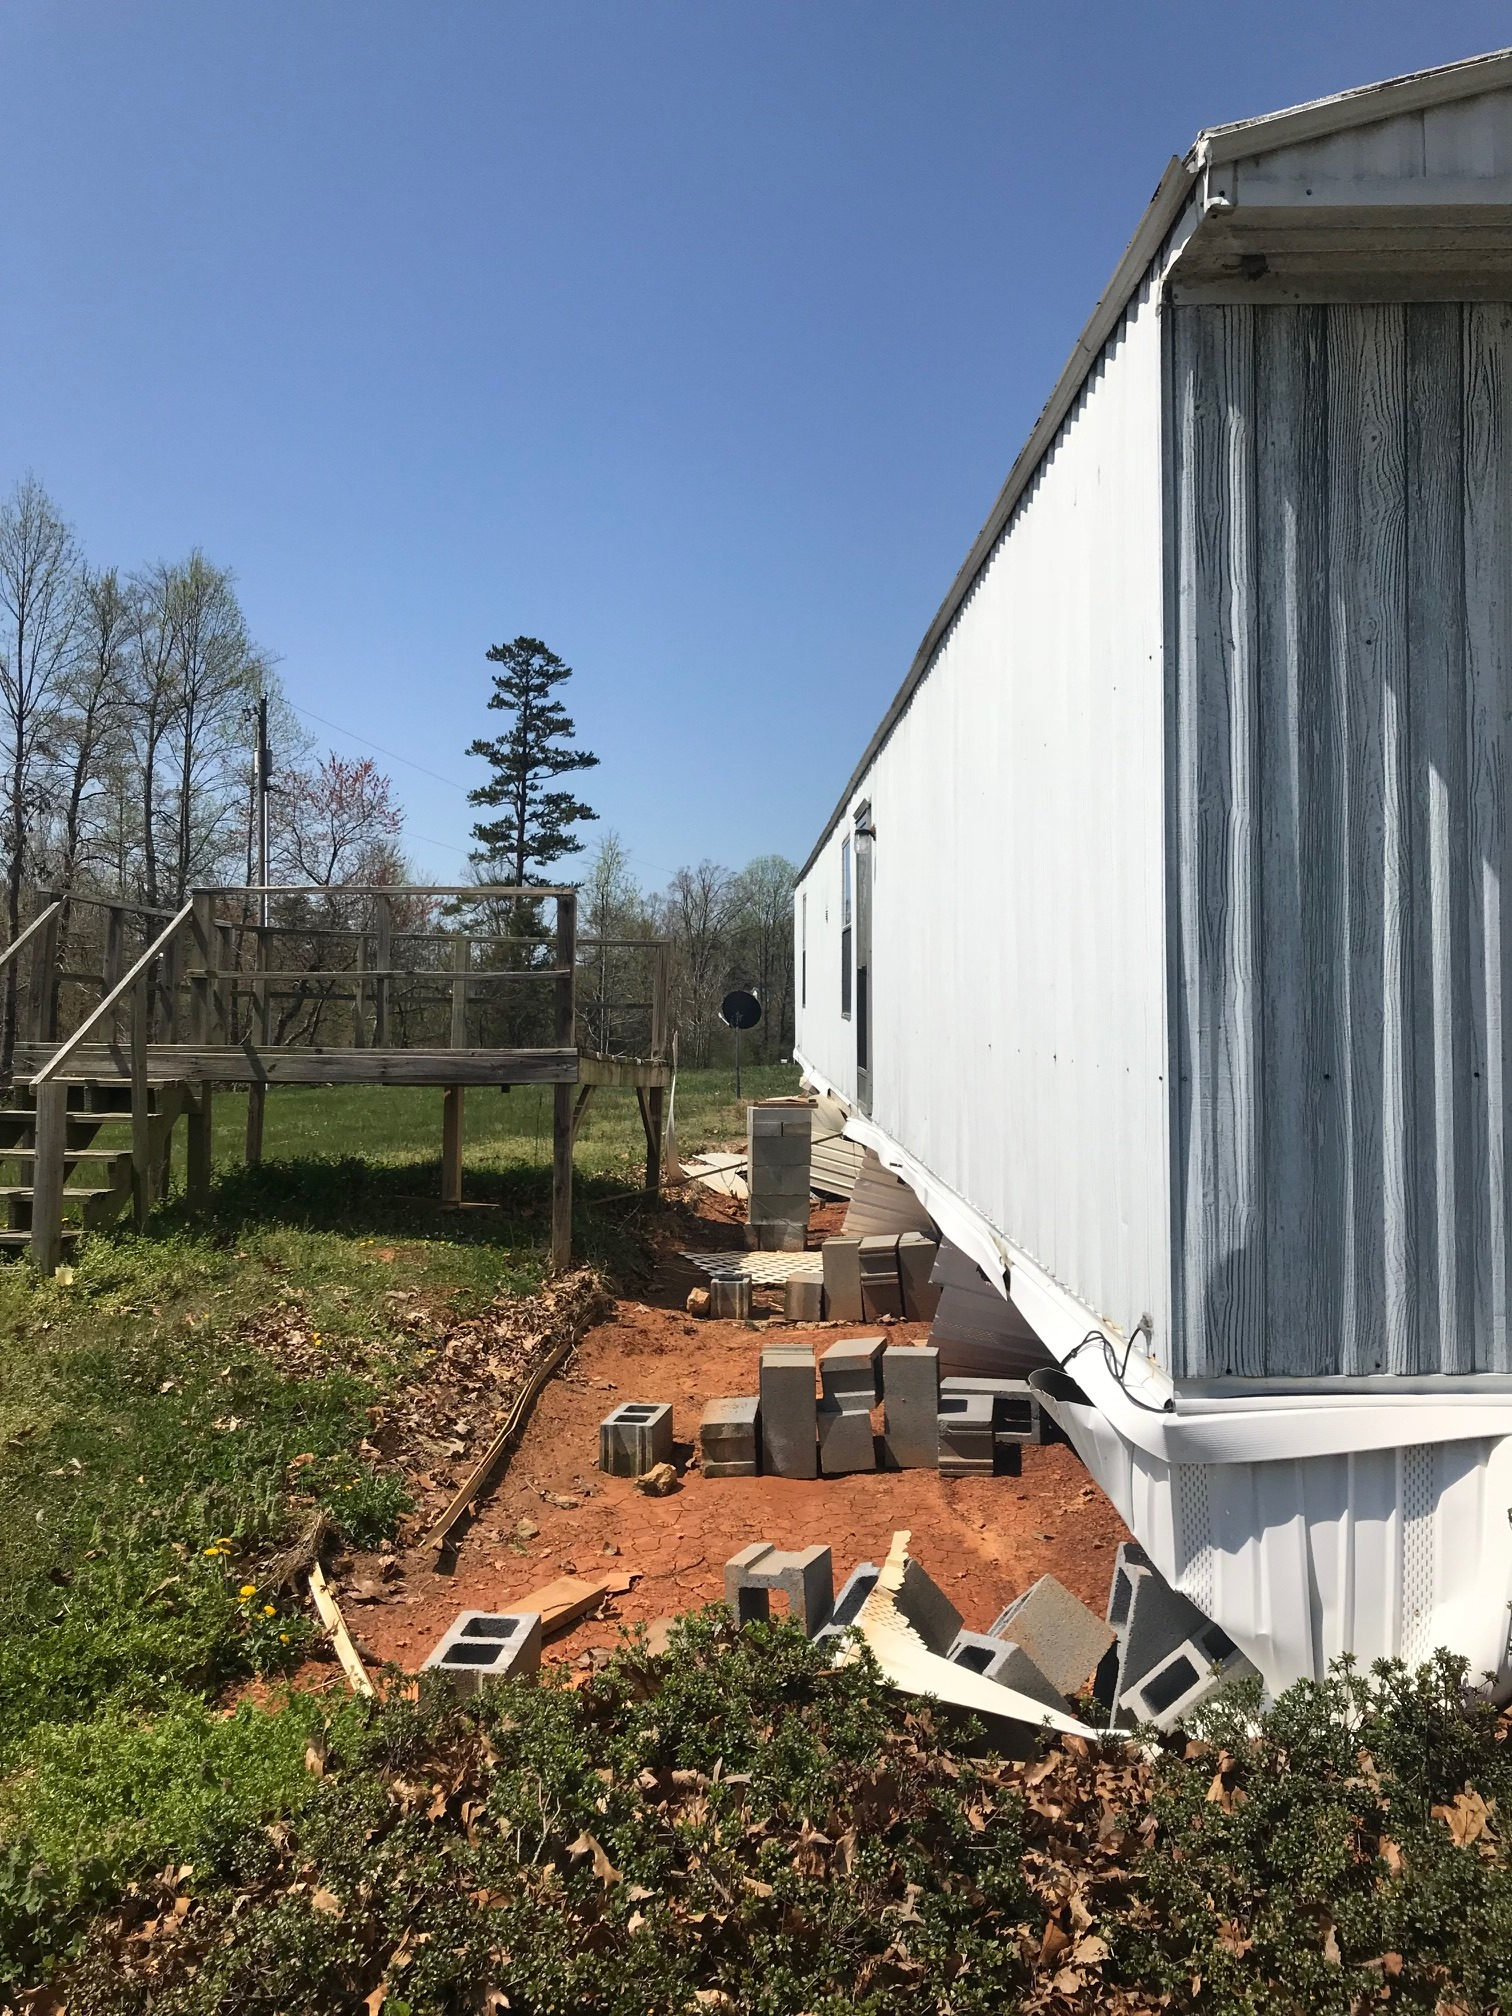 Mobile Home moved off foundation